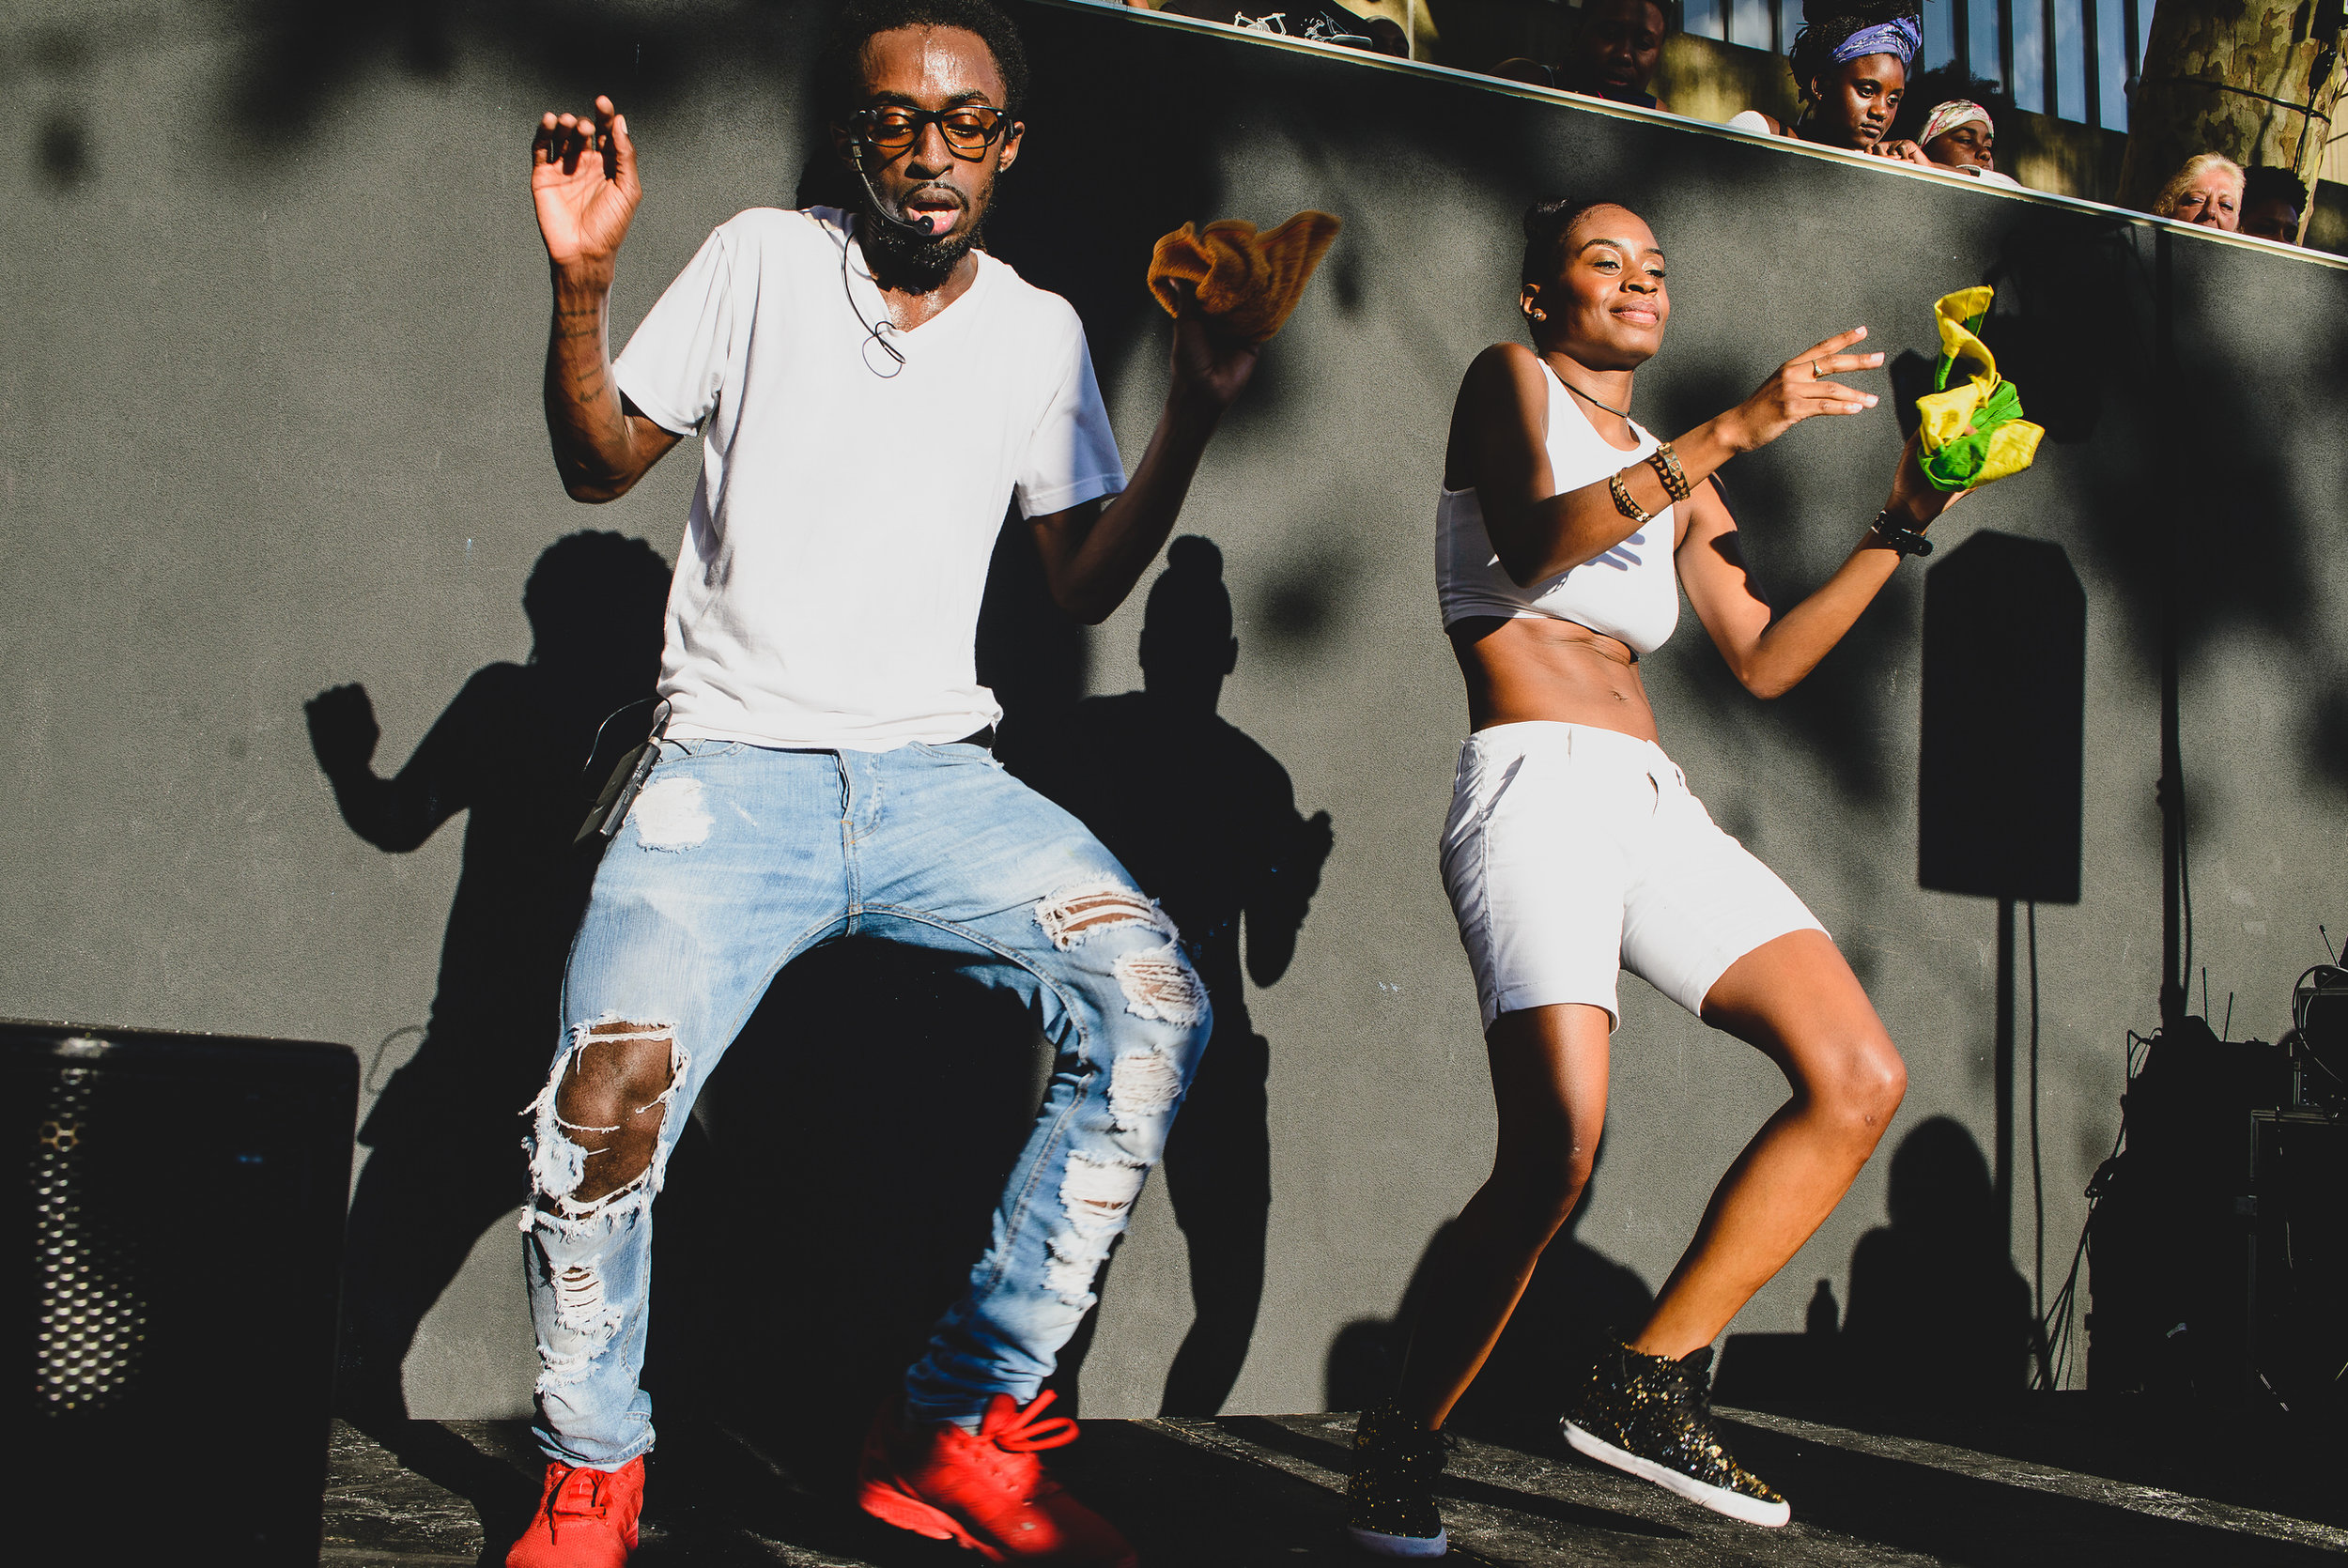 Dancehall choreograher Blacka Di Danca with Nelly Danca teaching a dancehall workshop to the crowd at Brooklyn Musuem's CaribBEING Target First Saturday